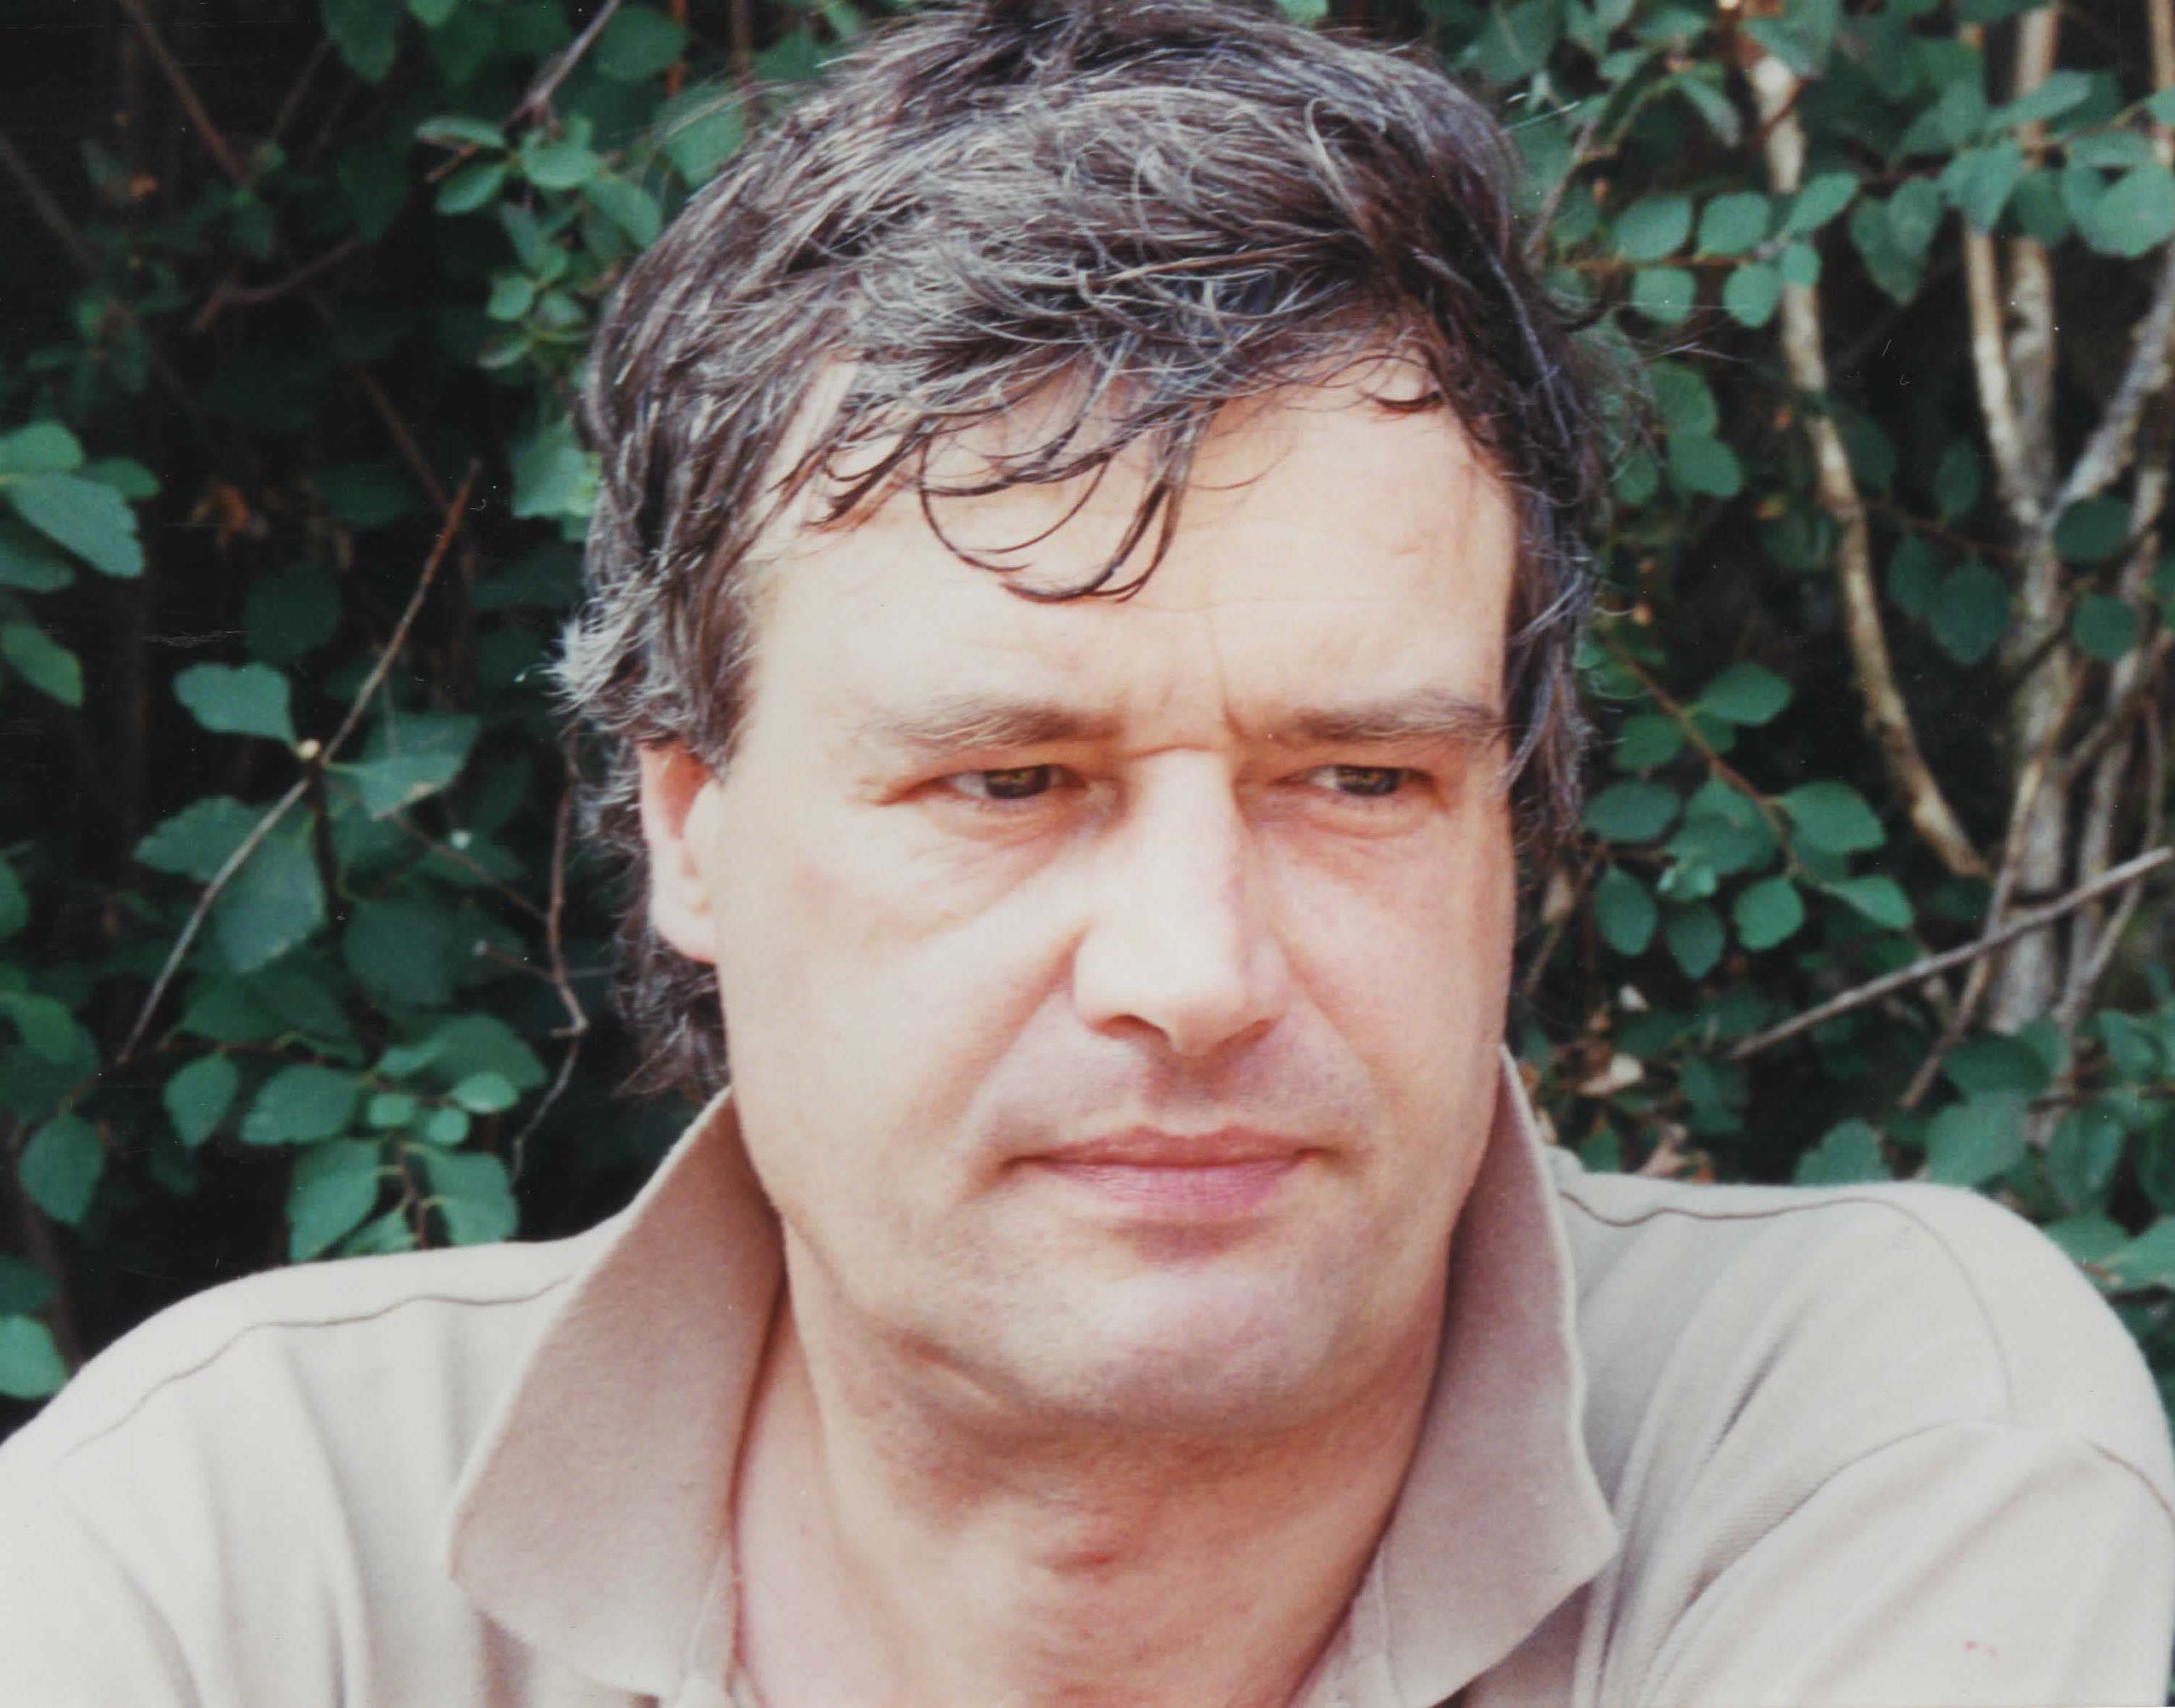 Remembering Tim Wilson on May 17 and the duty to share insightful discoveries